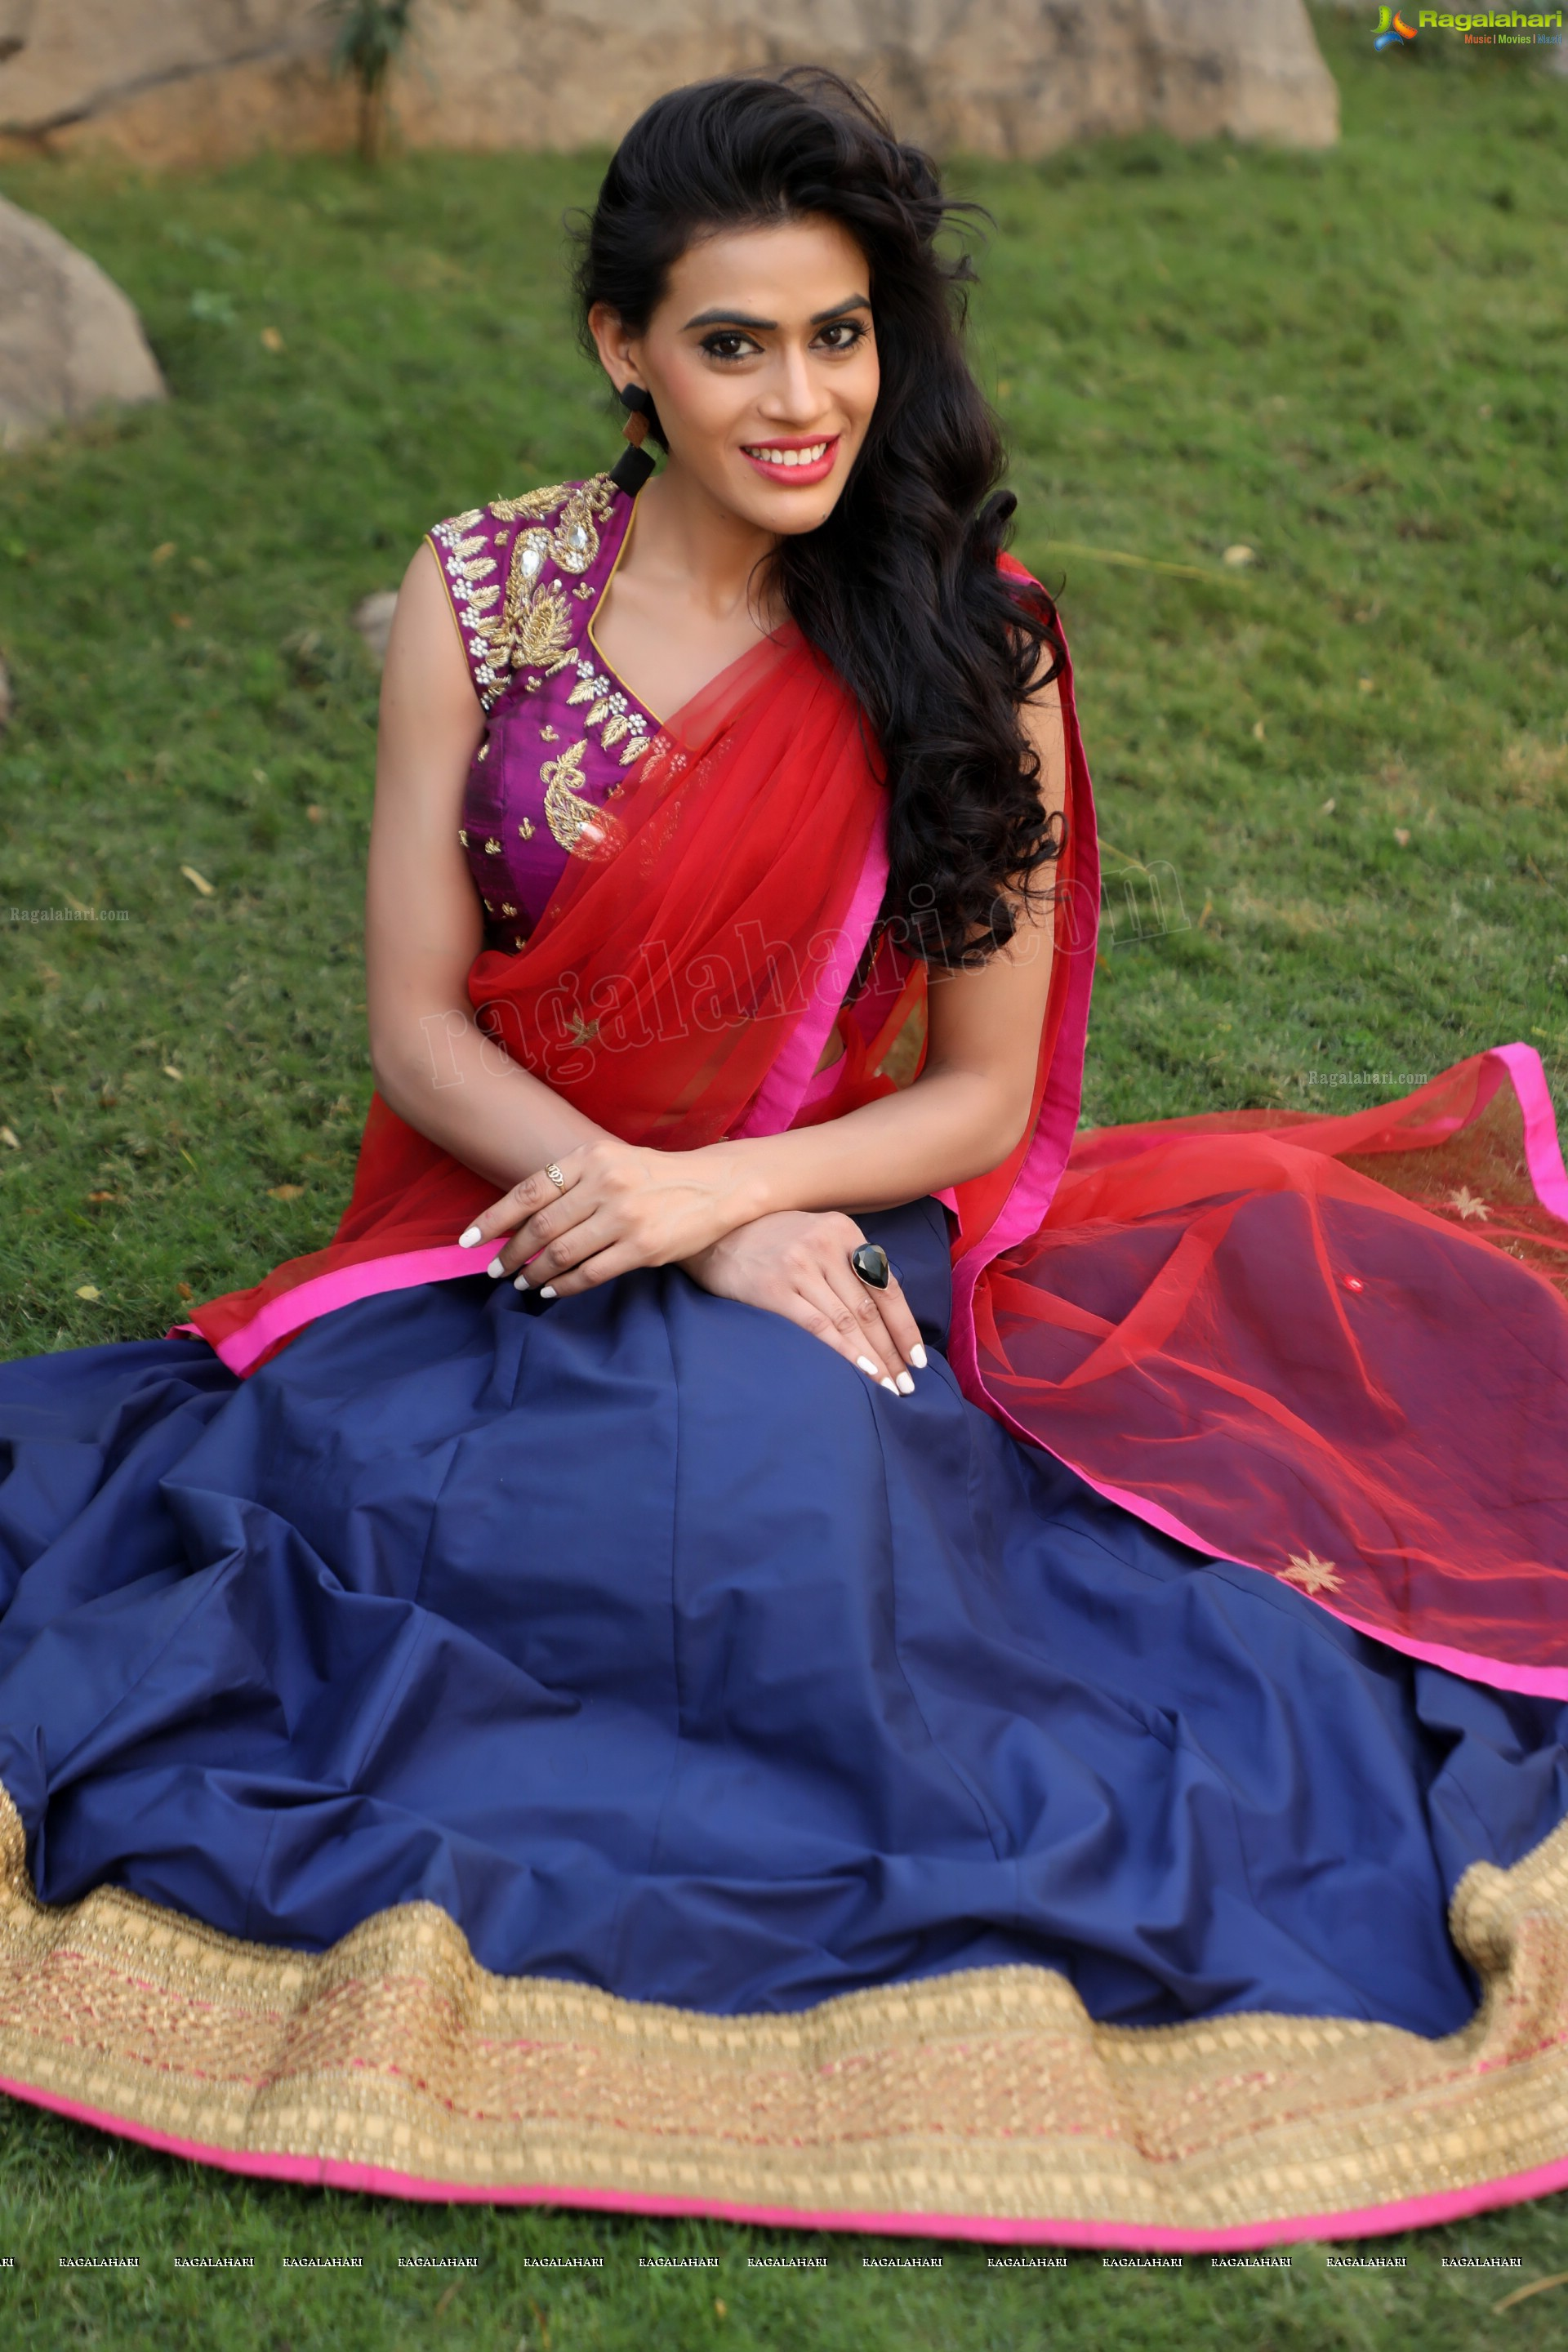 Bhavana r sharma exclusive high definition image 129 tollywood bhavana r sharma exclusive high definition image 129 tollywood actress stillsimages photos pictures hd wallpapers altavistaventures Image collections